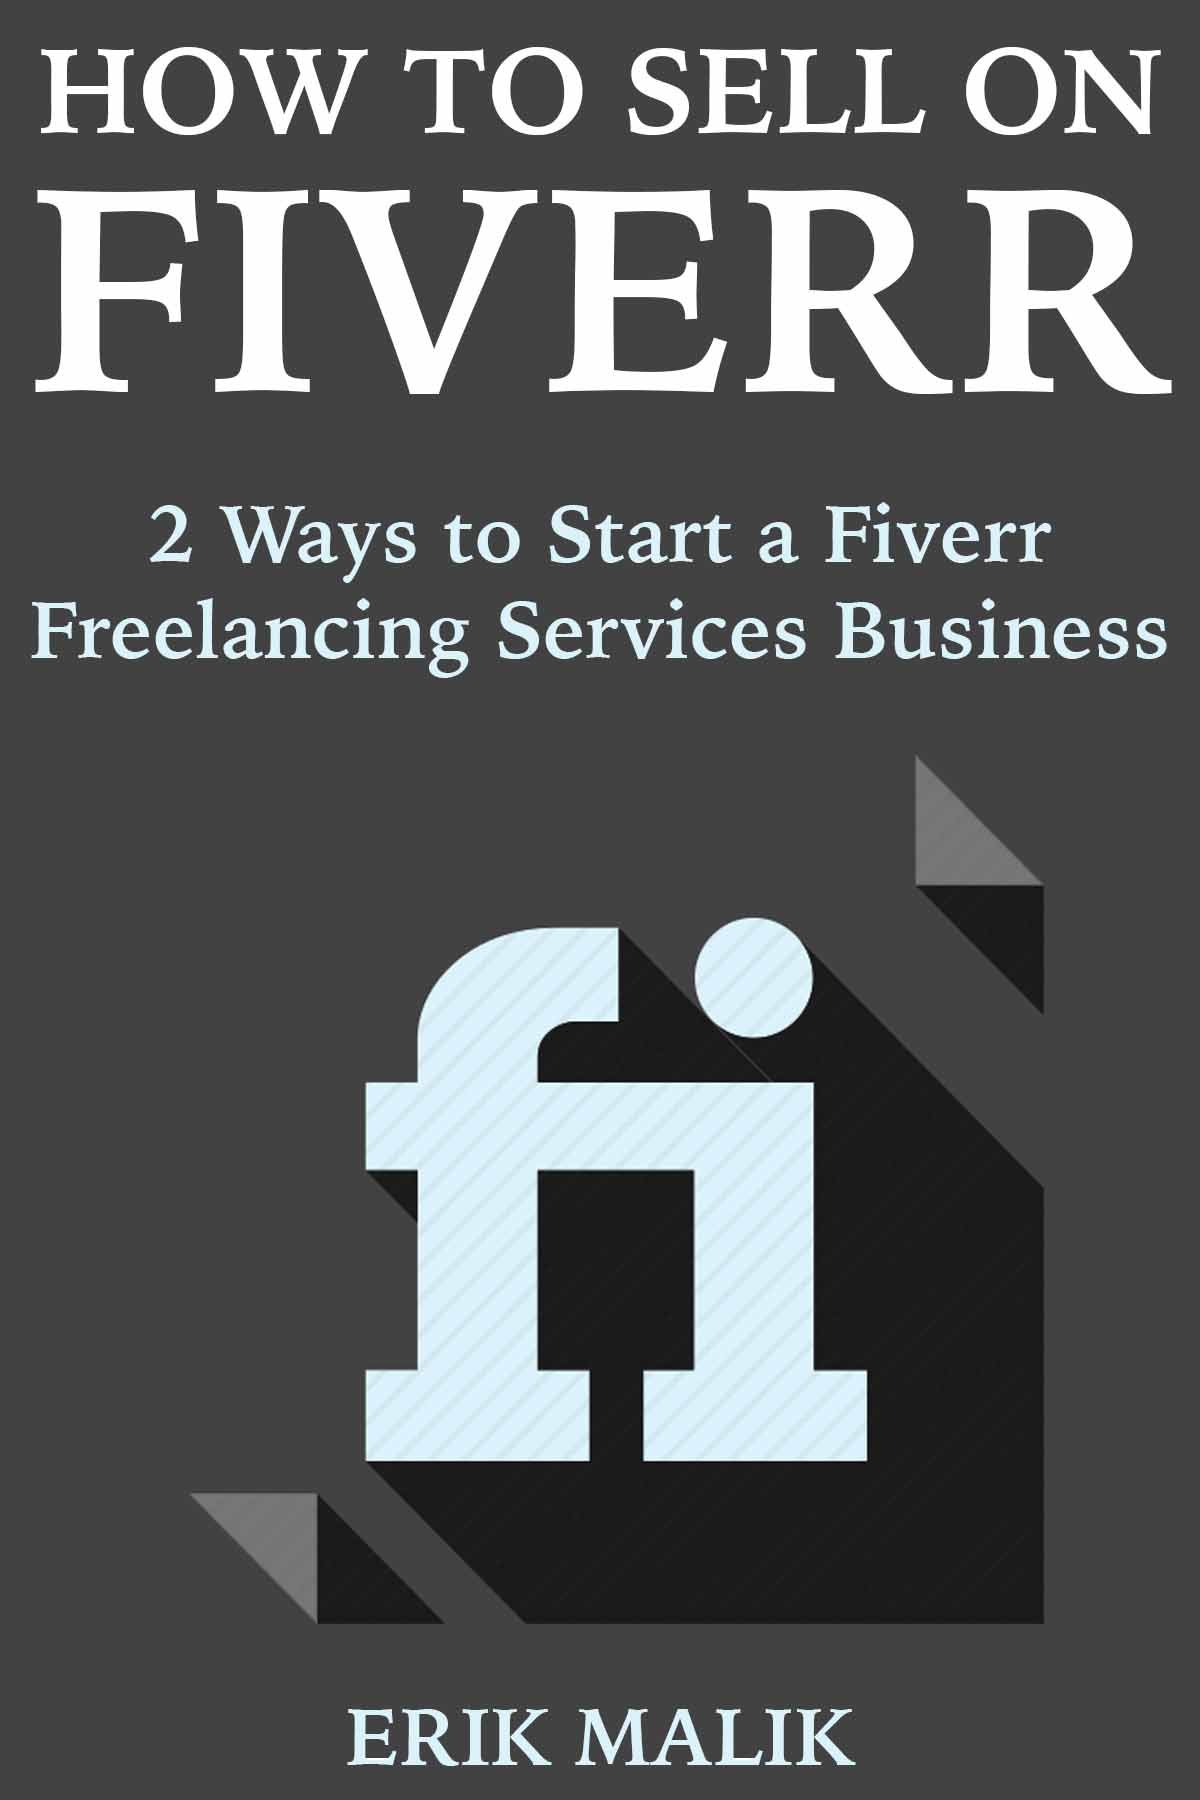 How to Sell on Fiverr: 2 Ways to Start a Fiverr Freelancing Services Business